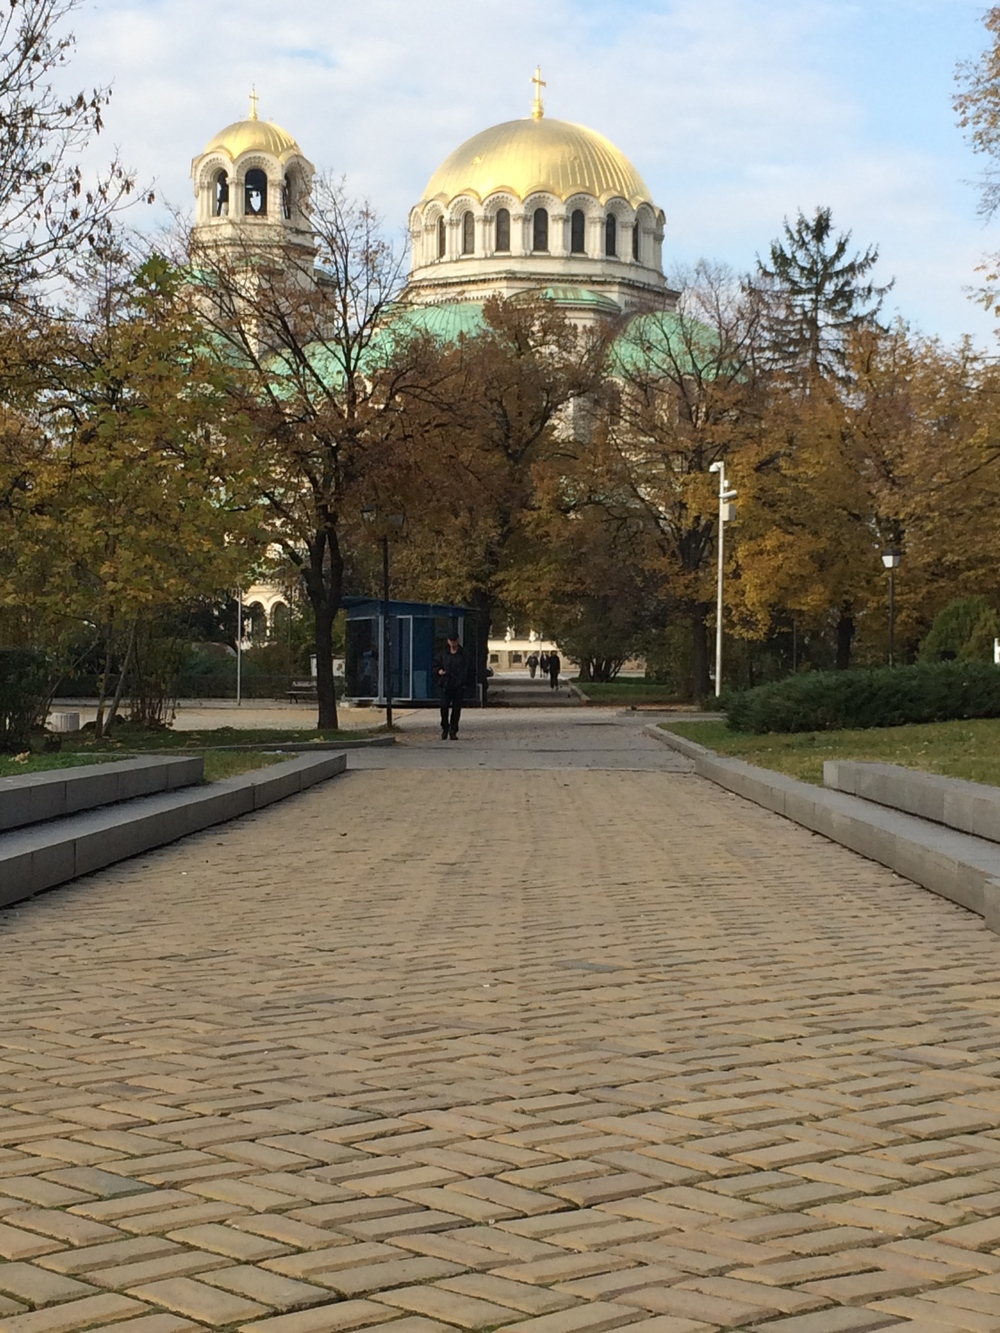 Sofia's famous yellow brick road leading up to Alexander Nevsky Cathedral.